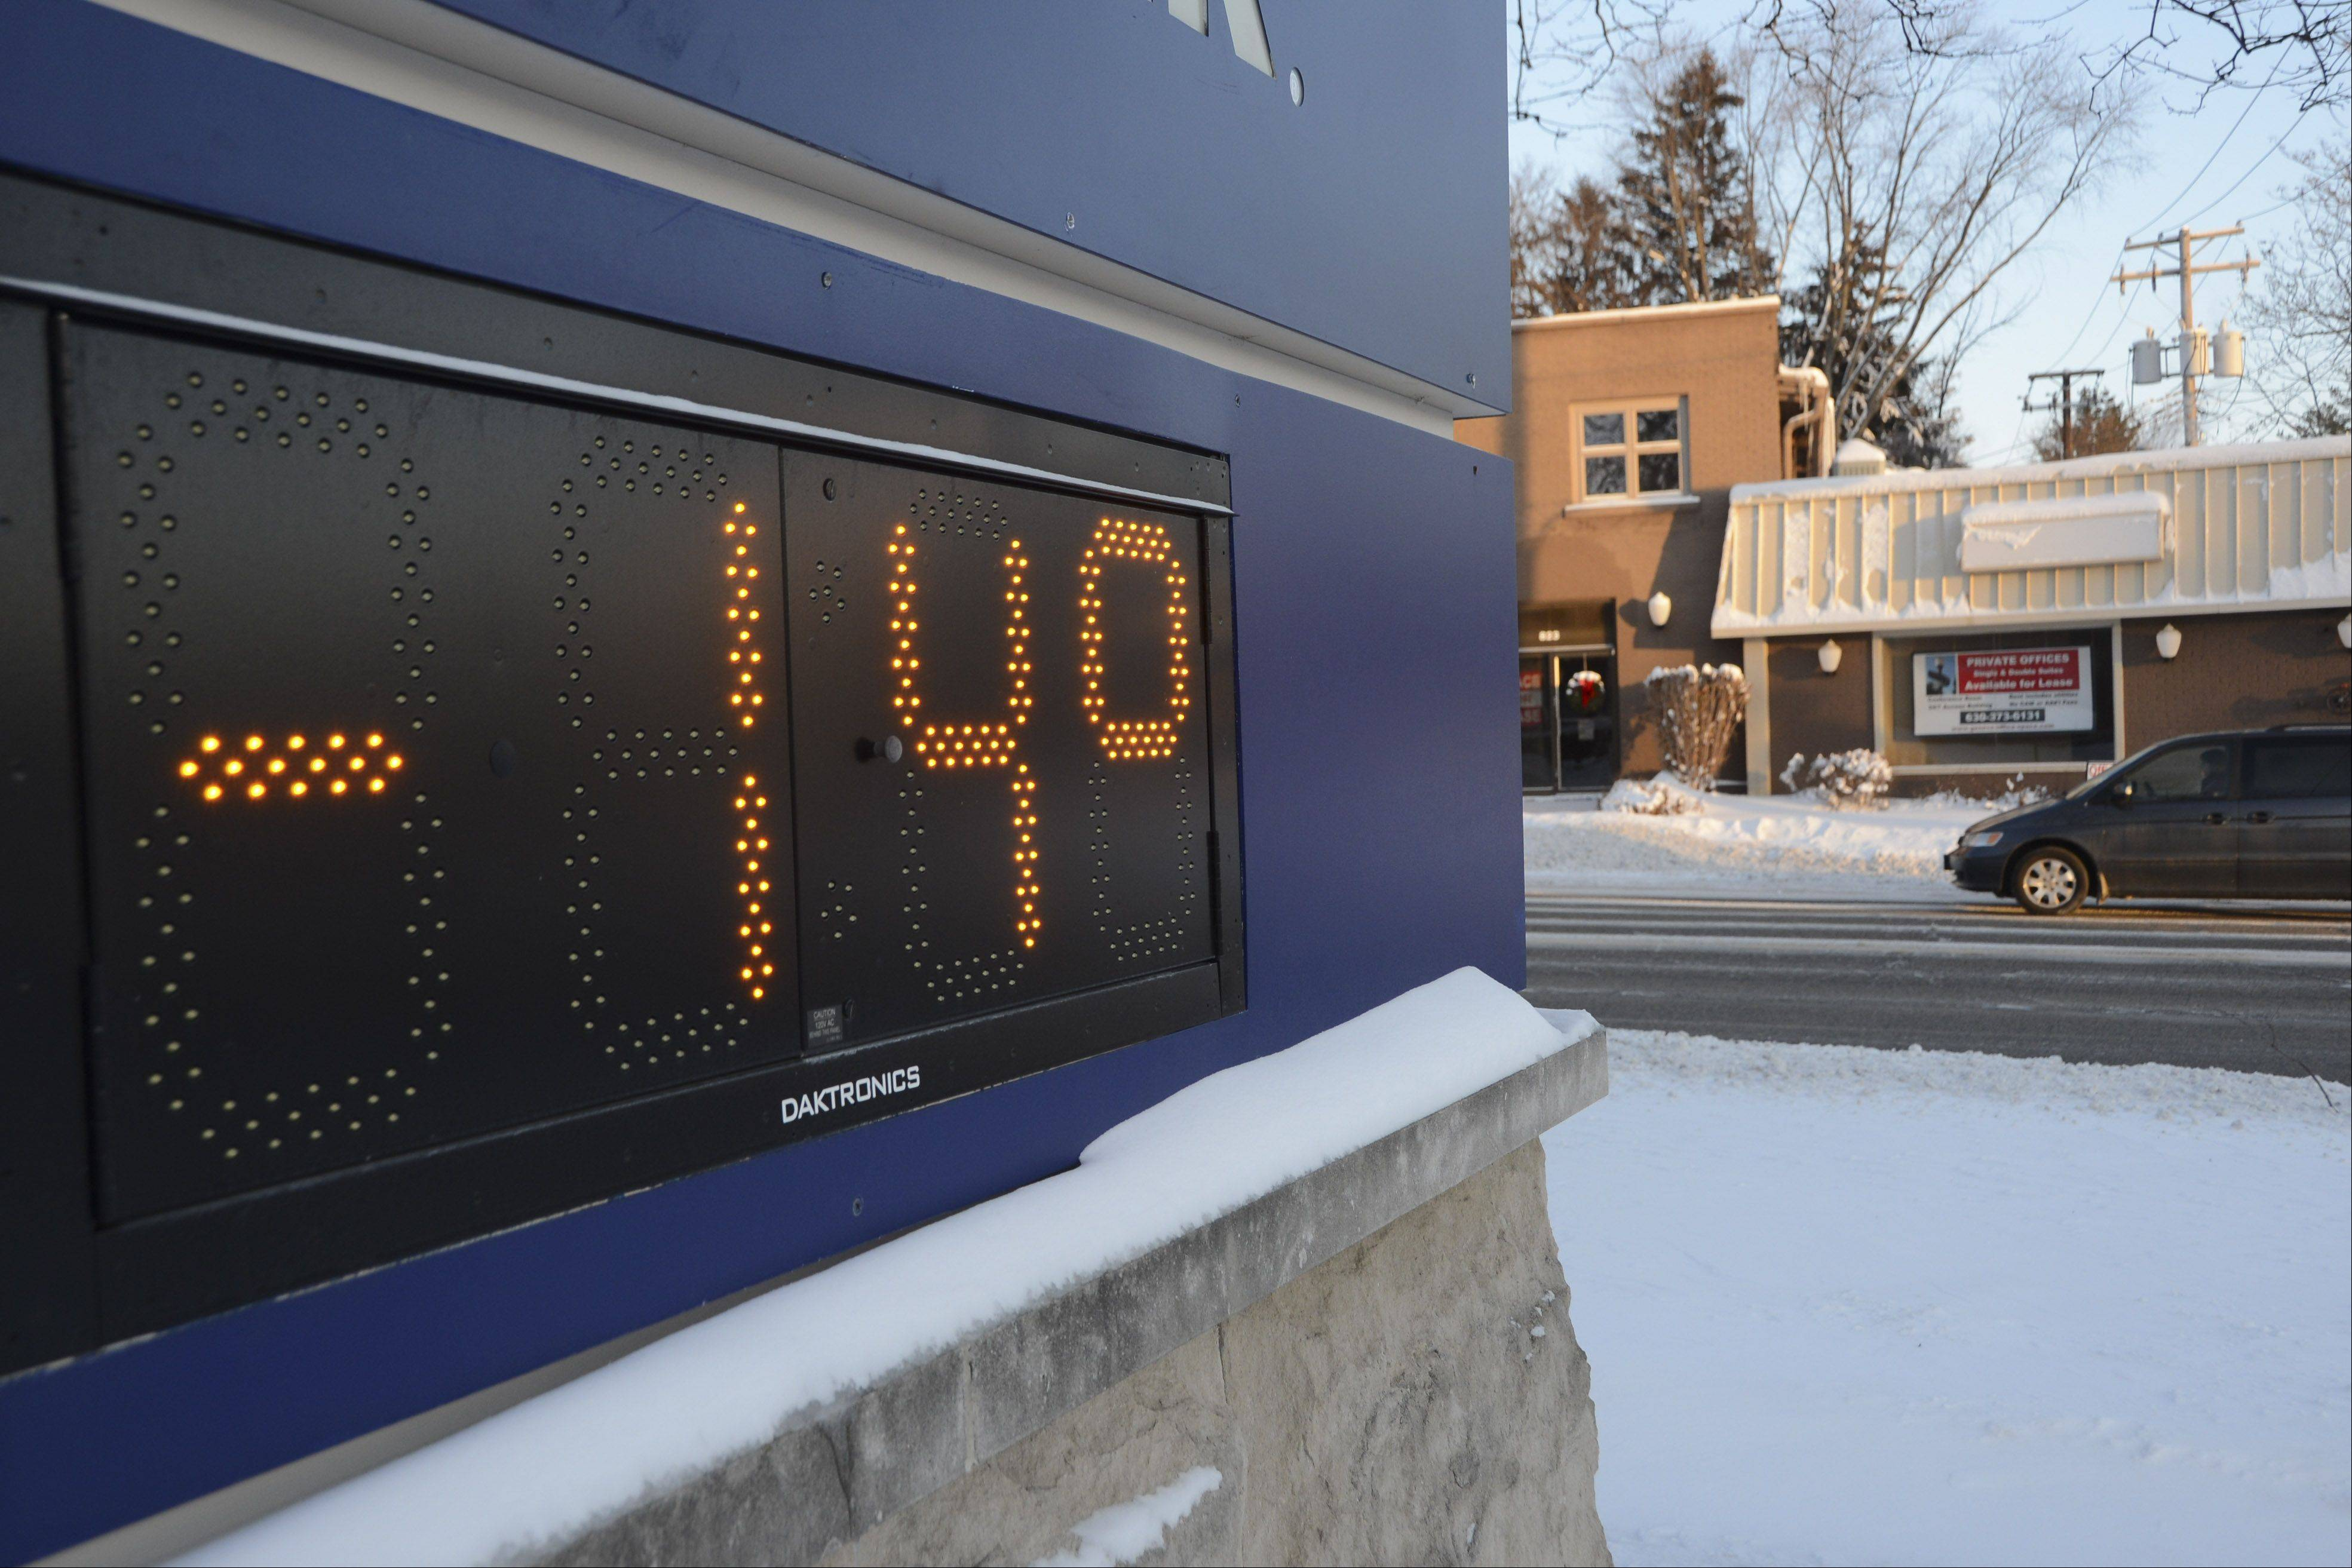 At 7:45 a.m. the temperature had dipped to -14 degrees in Geneva on Monday morning. The windchill was reported to be -40 degrees.